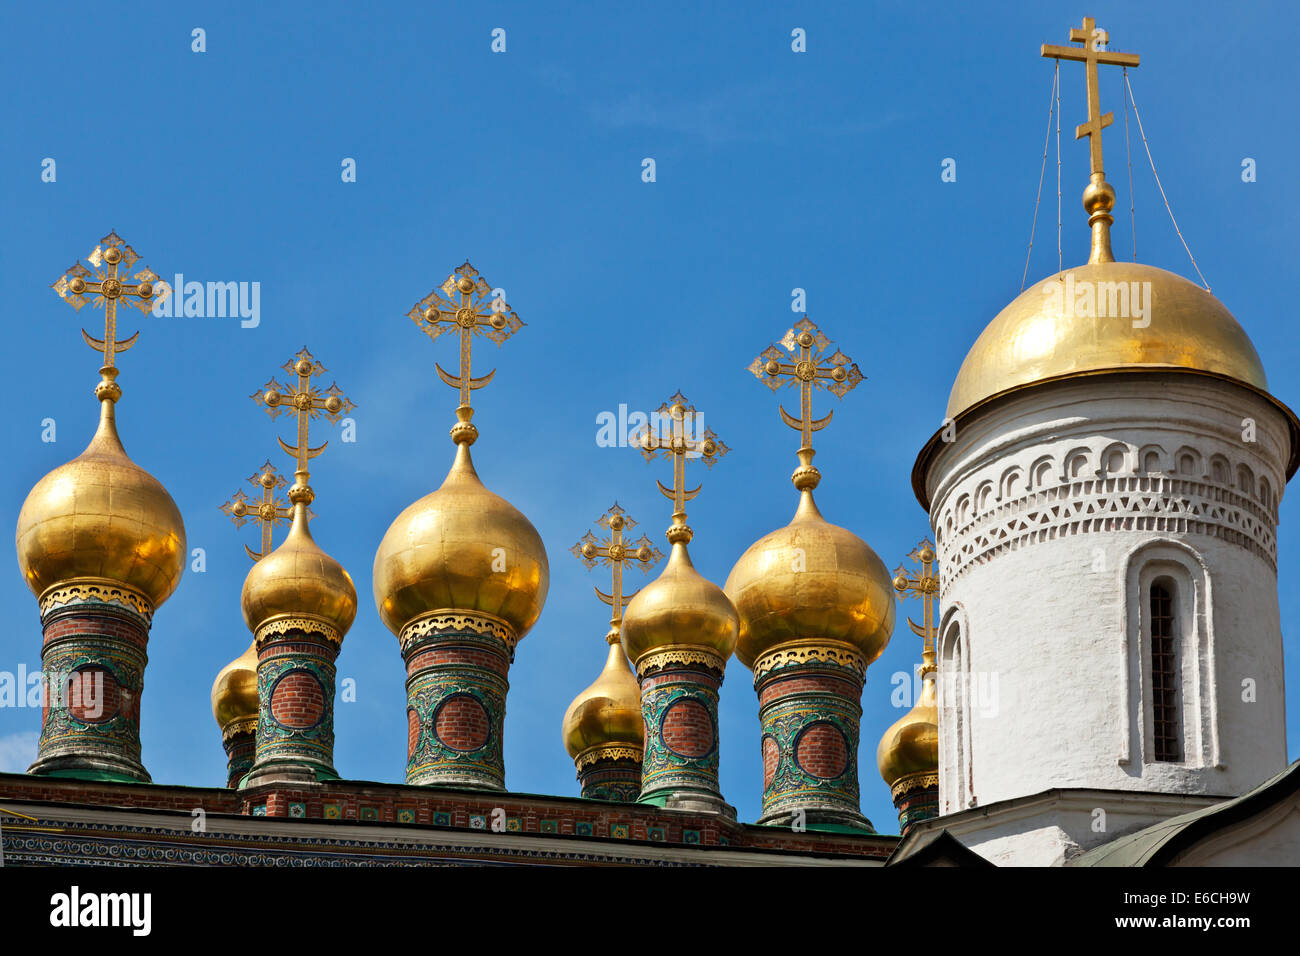 Cupolas of the Terem Palace Church, Moscow Kremlin, Russia - Stock Image